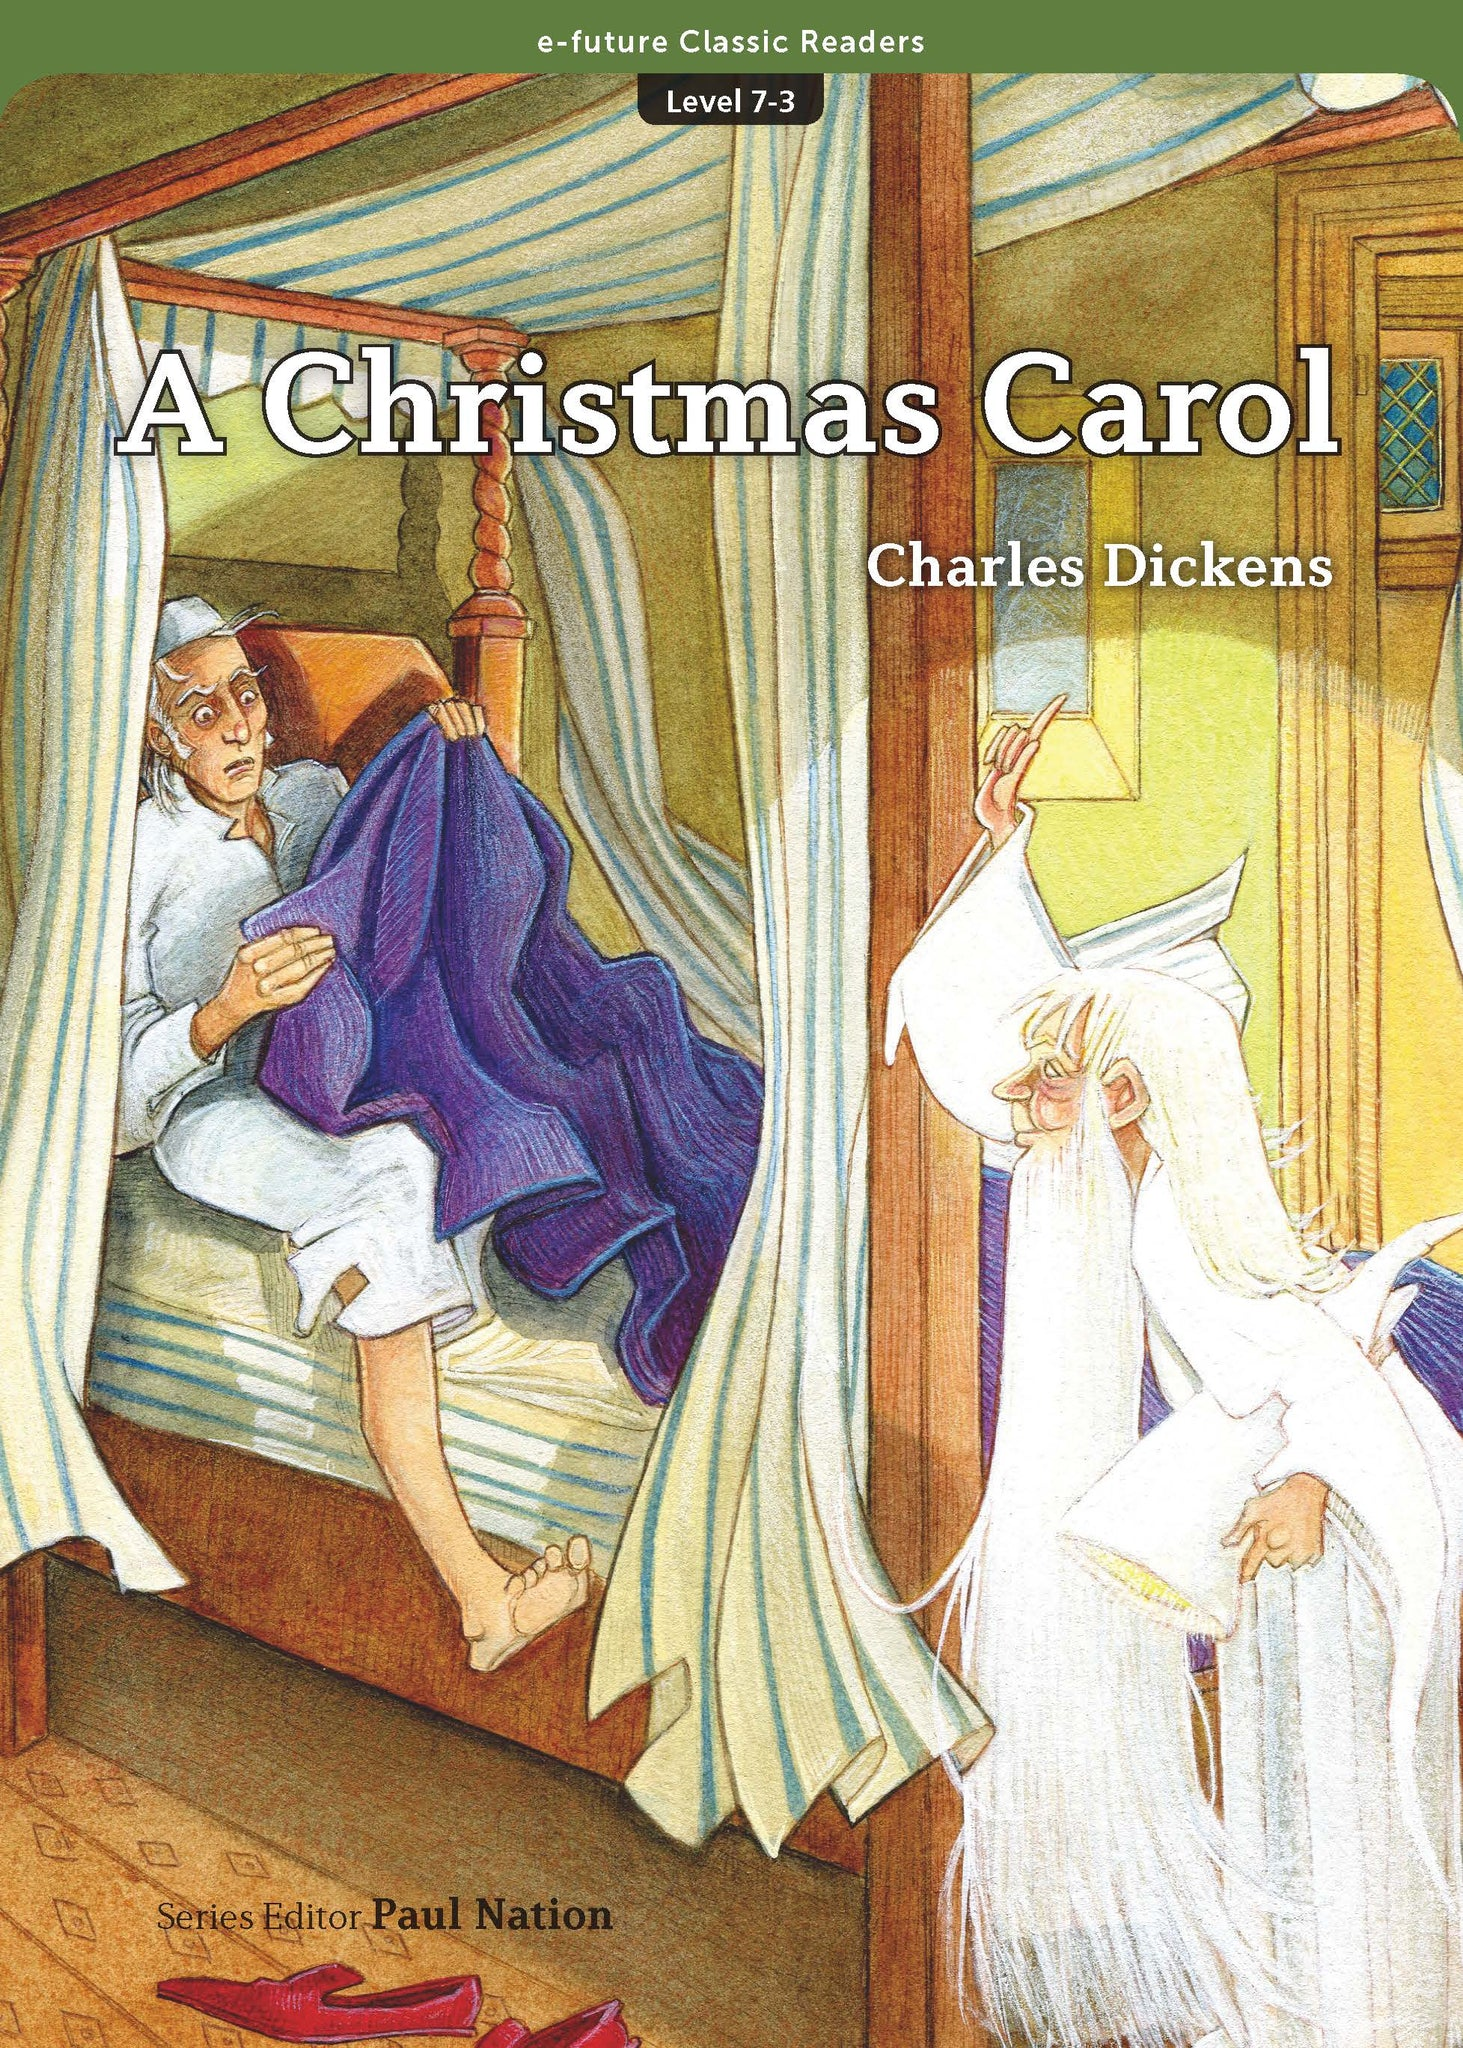 EF Classic Readers Level 7, Book 3: A Christmas Carol